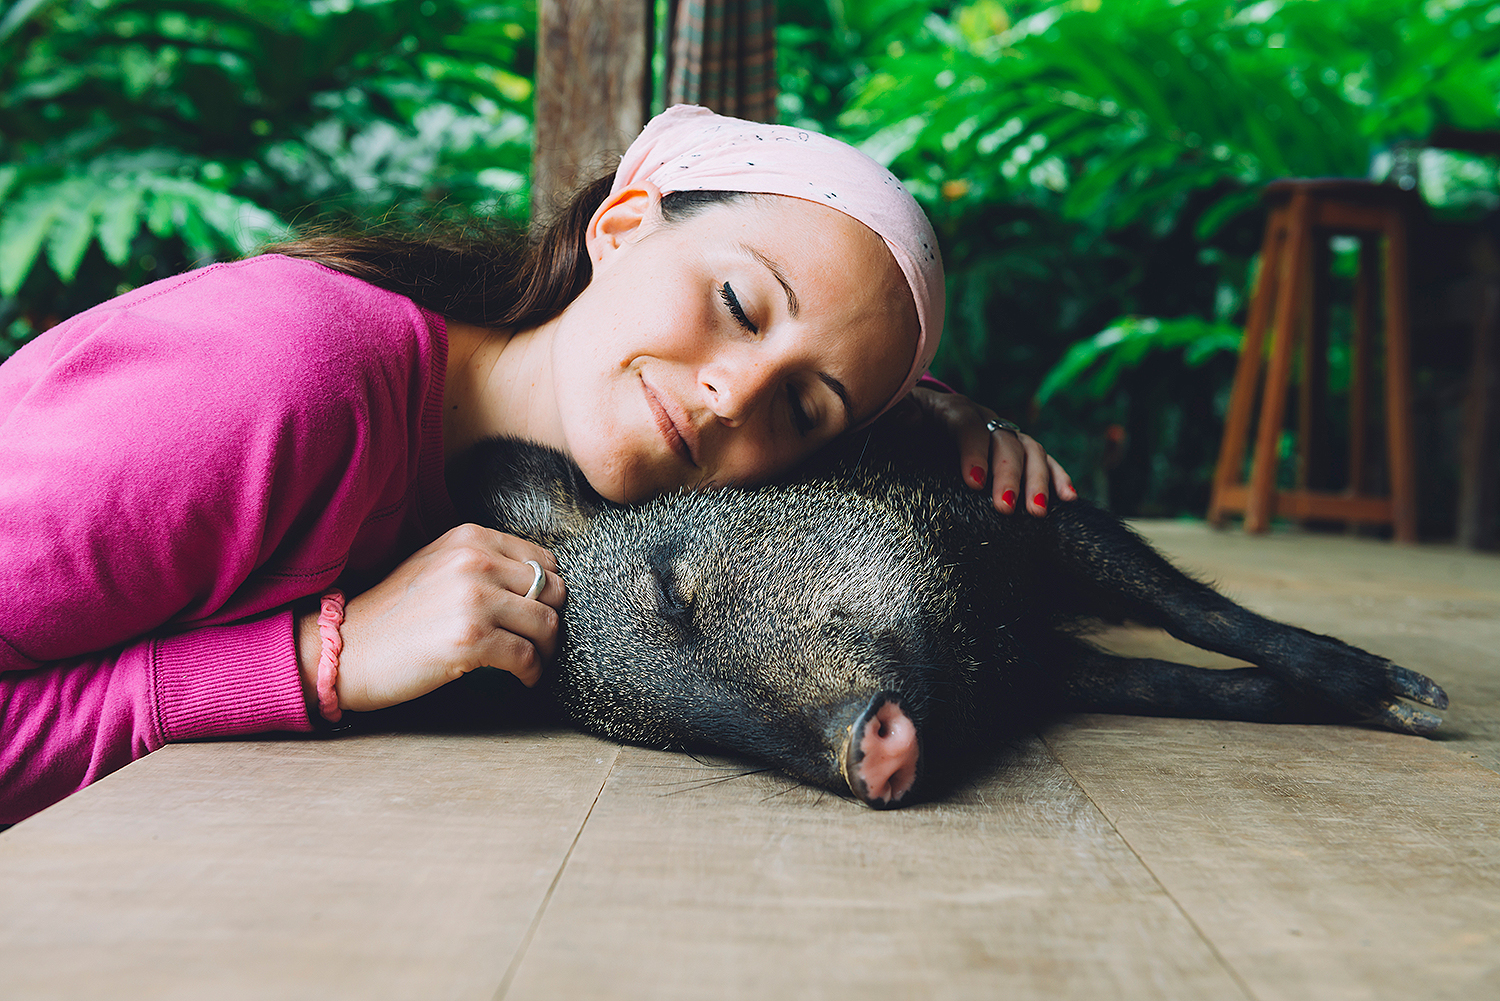 South Carolina Farm Sanctuary Has a 'Piggy Cuddler Team' — And They're Looking for New Members